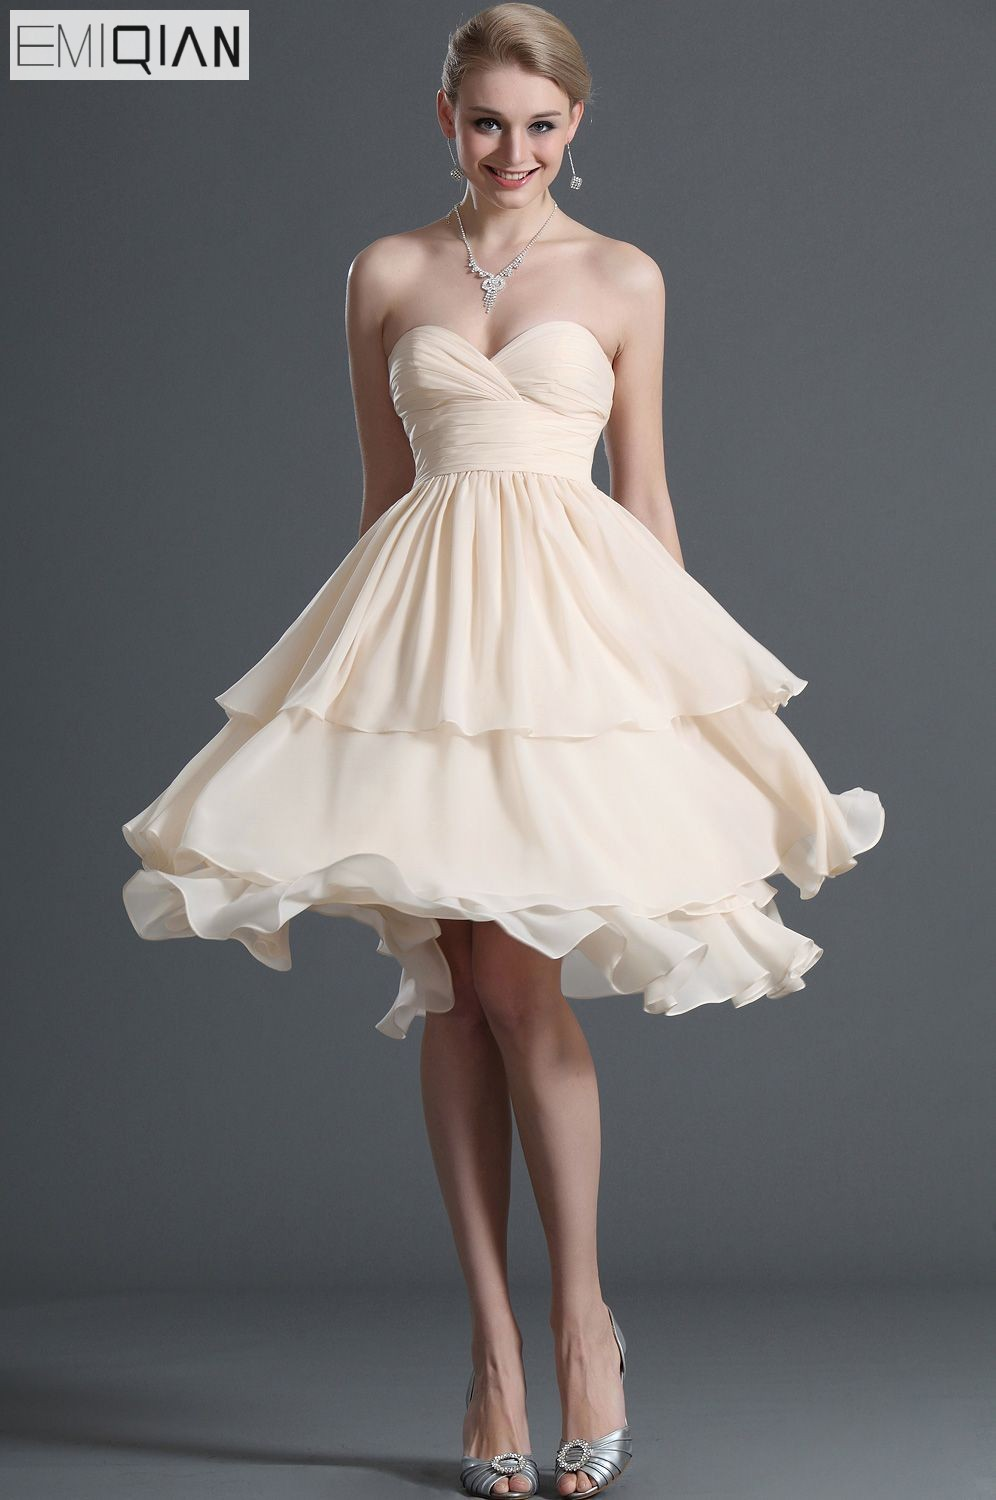 Free Shipping New Tiered Skirt Short Prom Dress Fabulous Strapless Sweetheart Chiffon Cocktail Party Dress